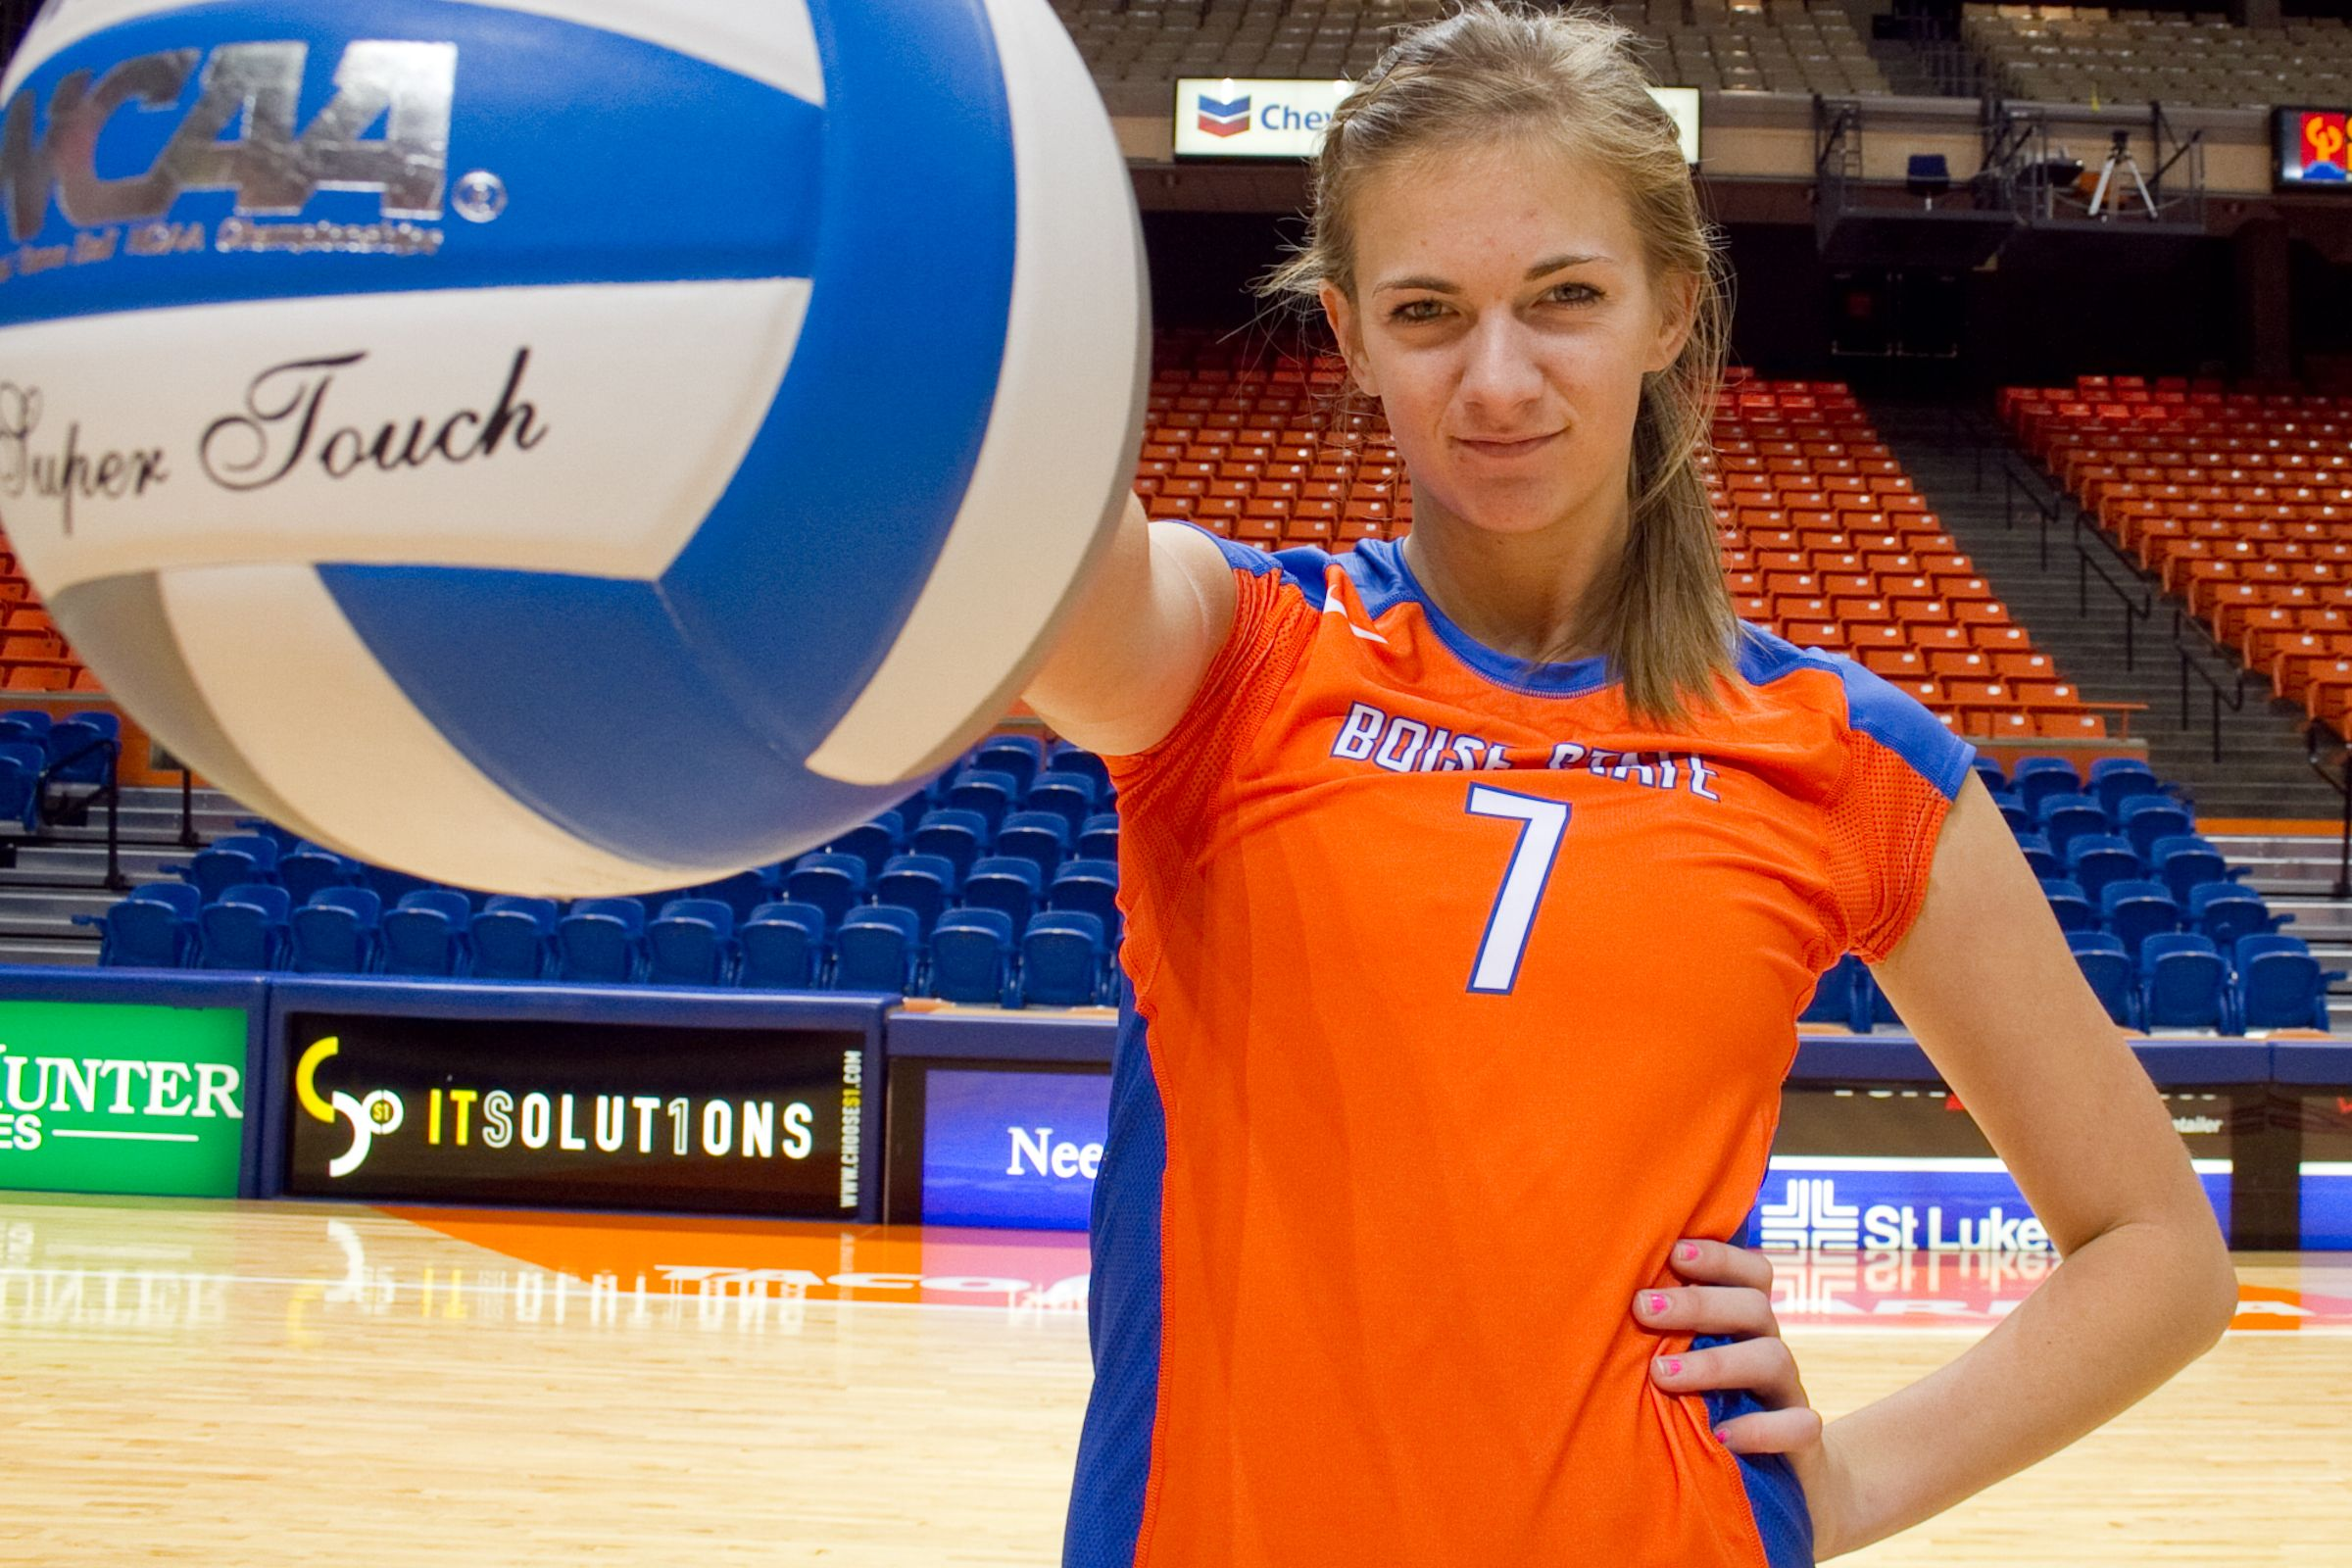 Boise State Volleyball Ball Exercises Boise State Football Boise State